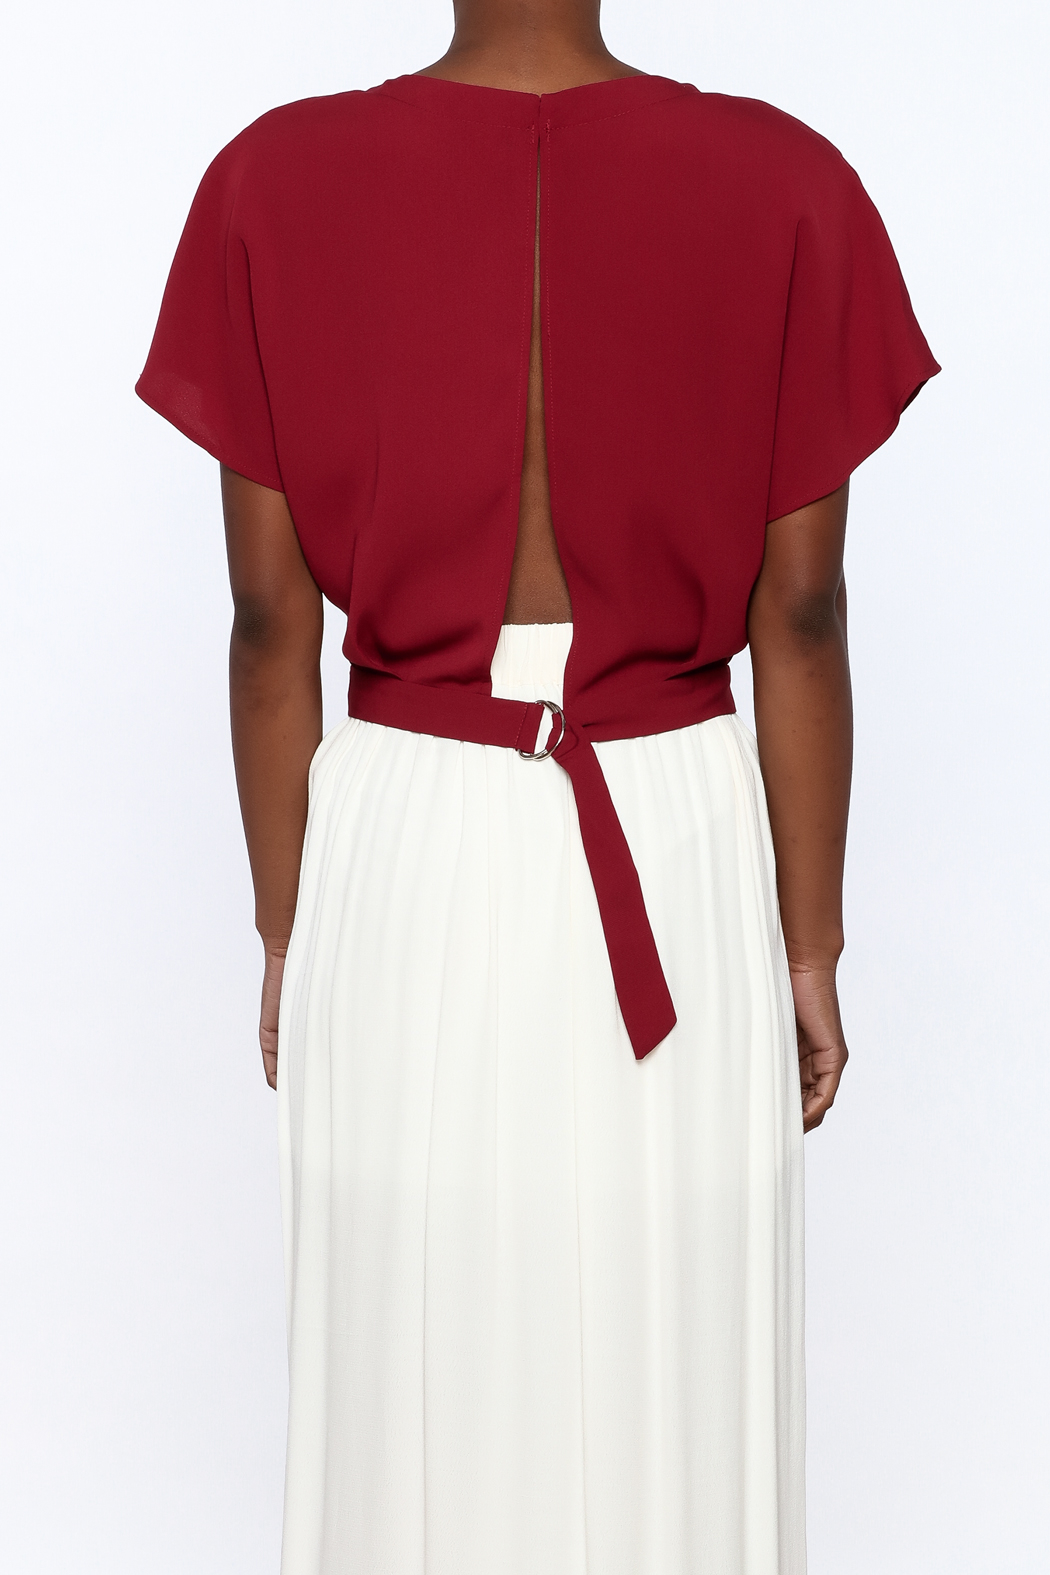 Alythea Burgundy Woven Top - Back Cropped Image